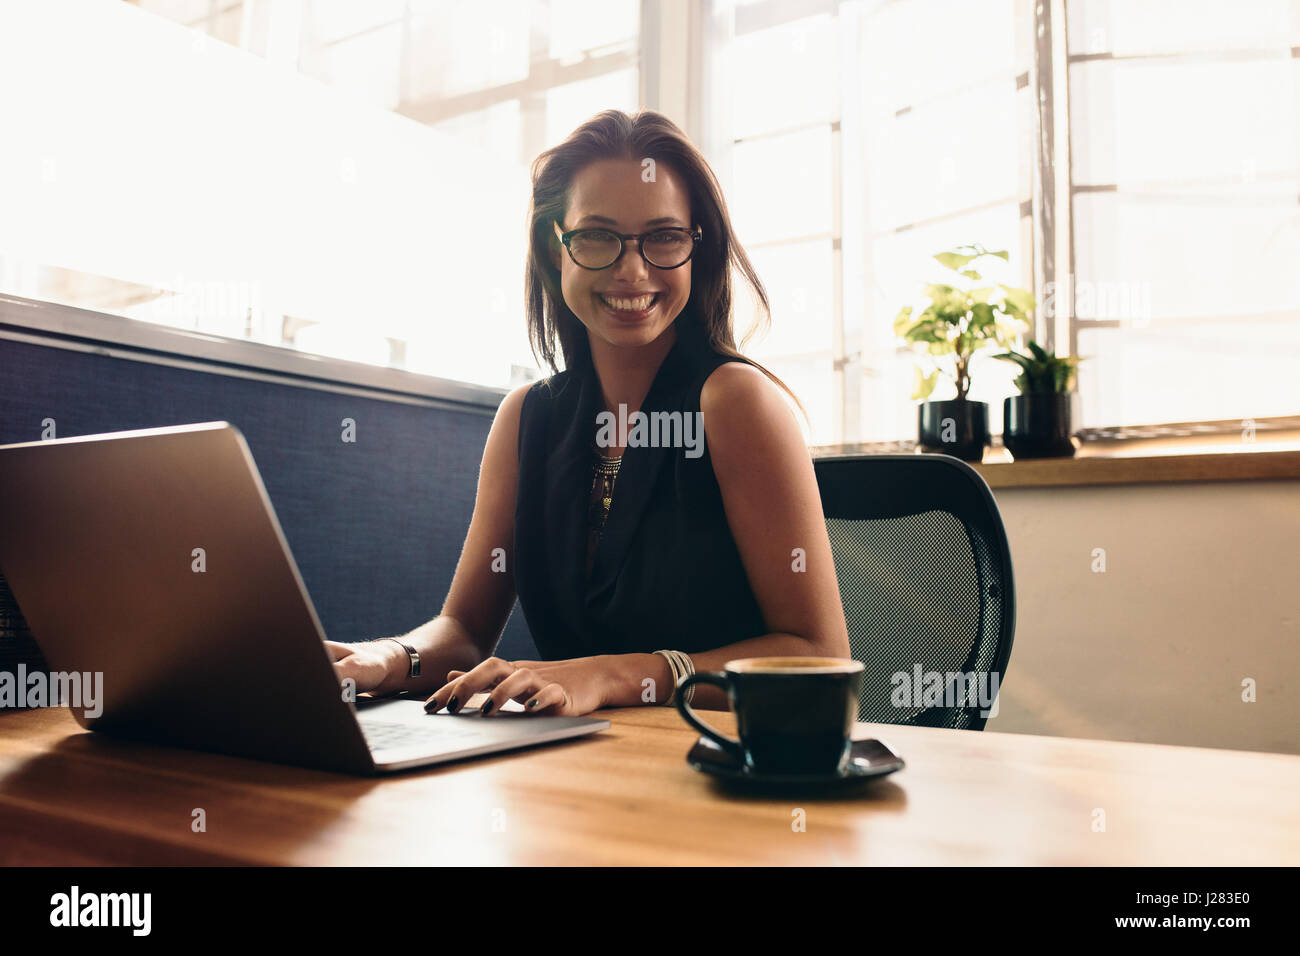 Female vlogger editing her vlog on Computer. Smiling young woman at her desk in office working on computer with - Stock Image